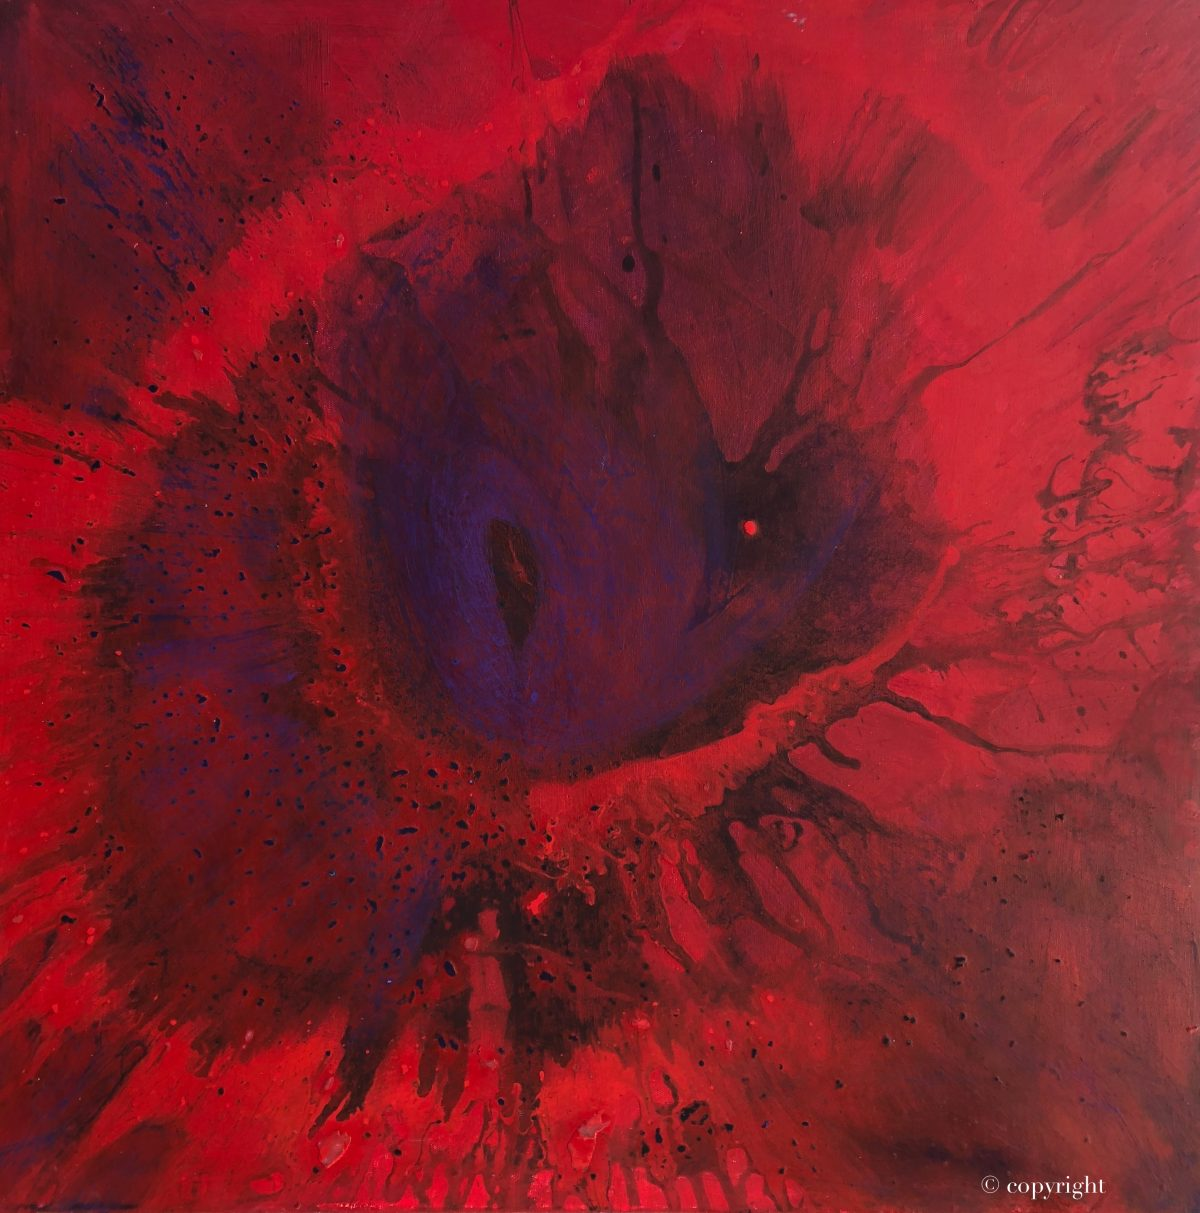 red giant spin painting